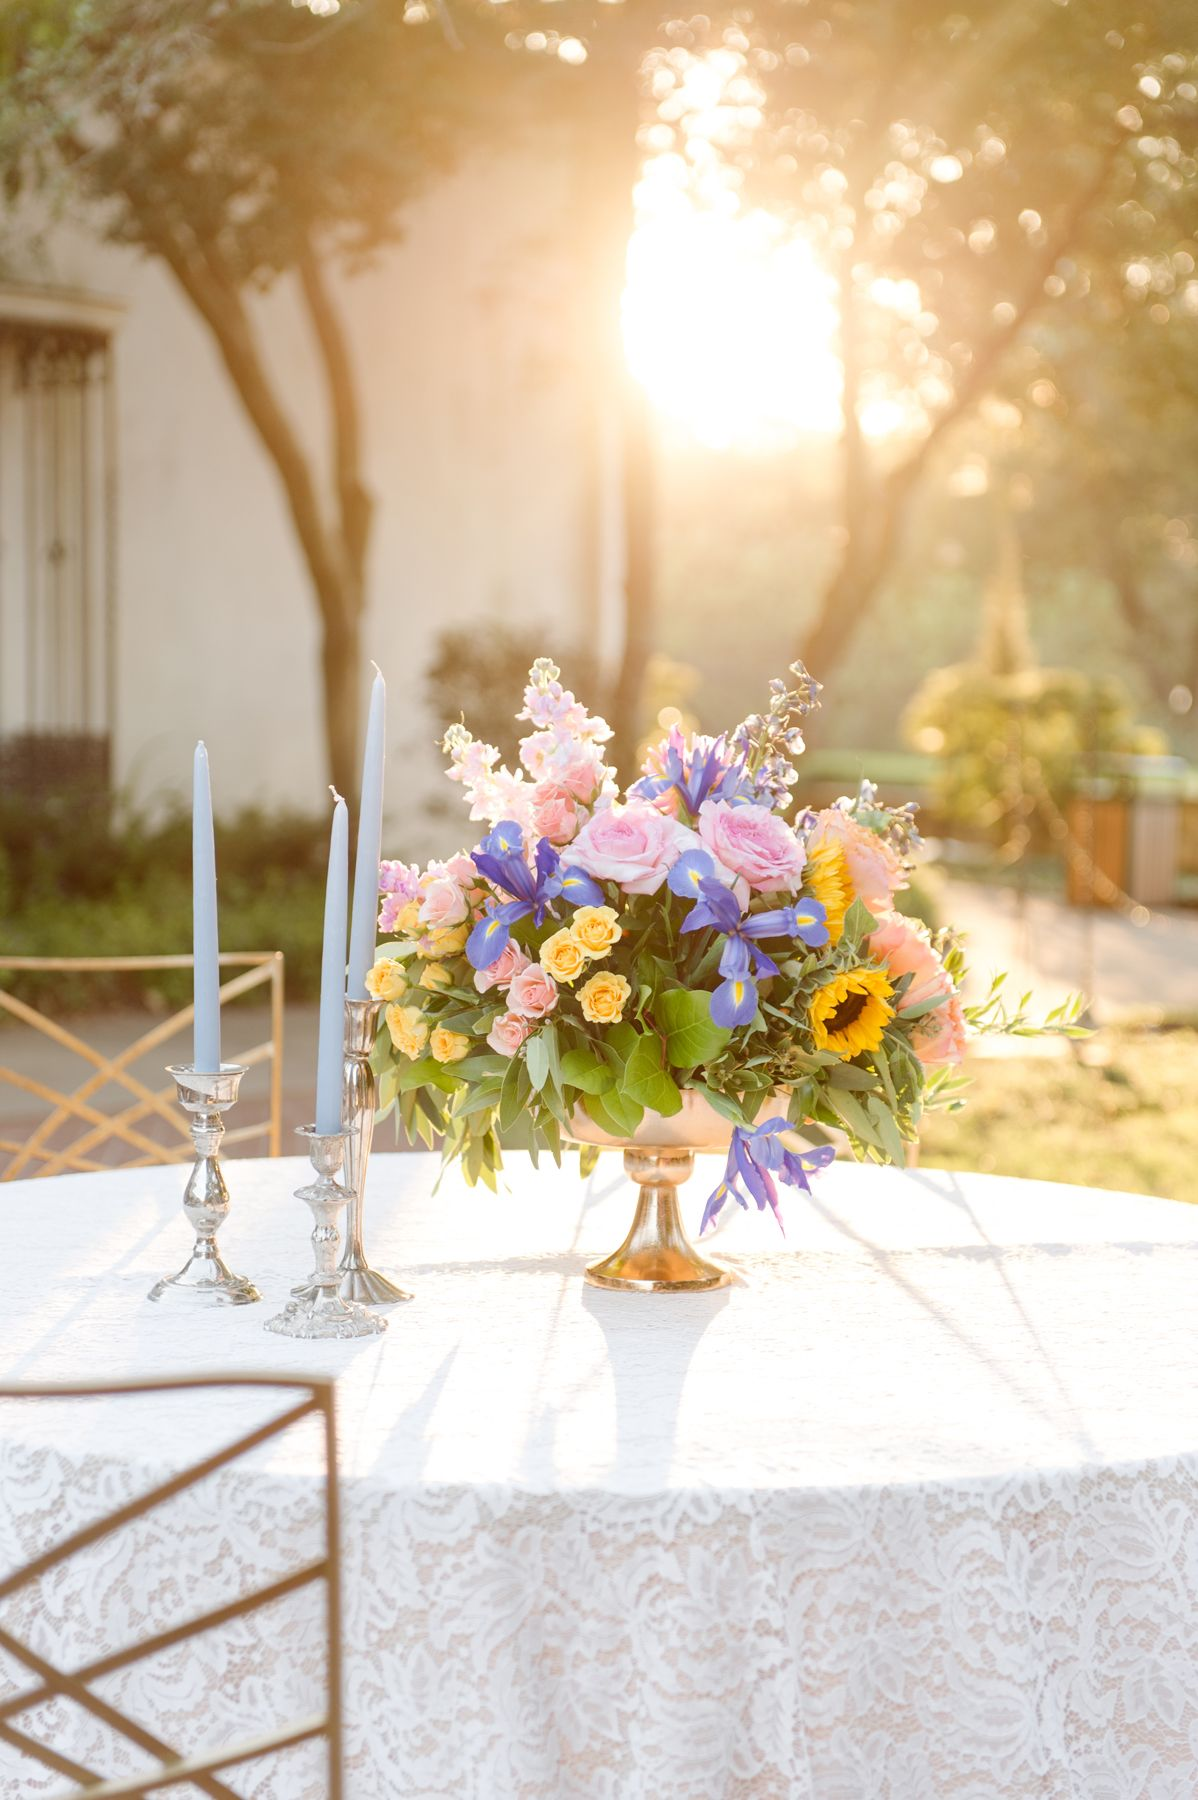 Wildflower Wedding Centerpiece In Footed Vase Weddings Events By